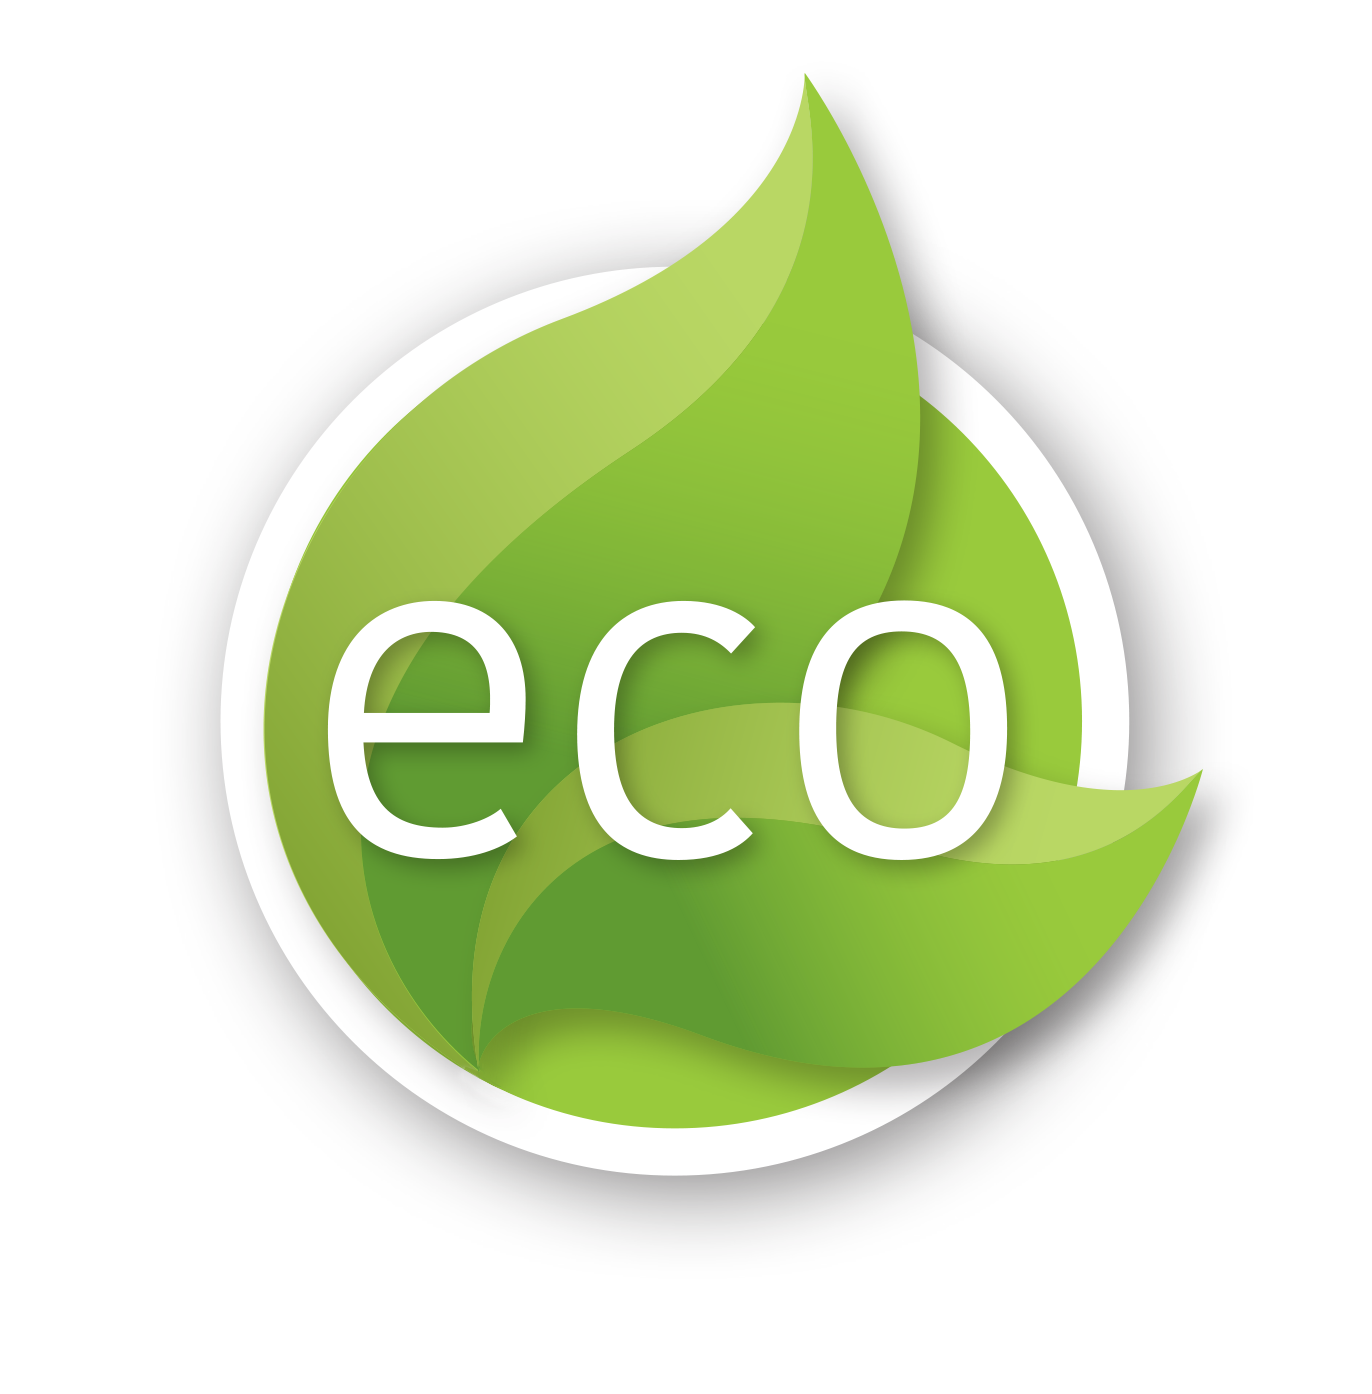 eco_piktogram.png